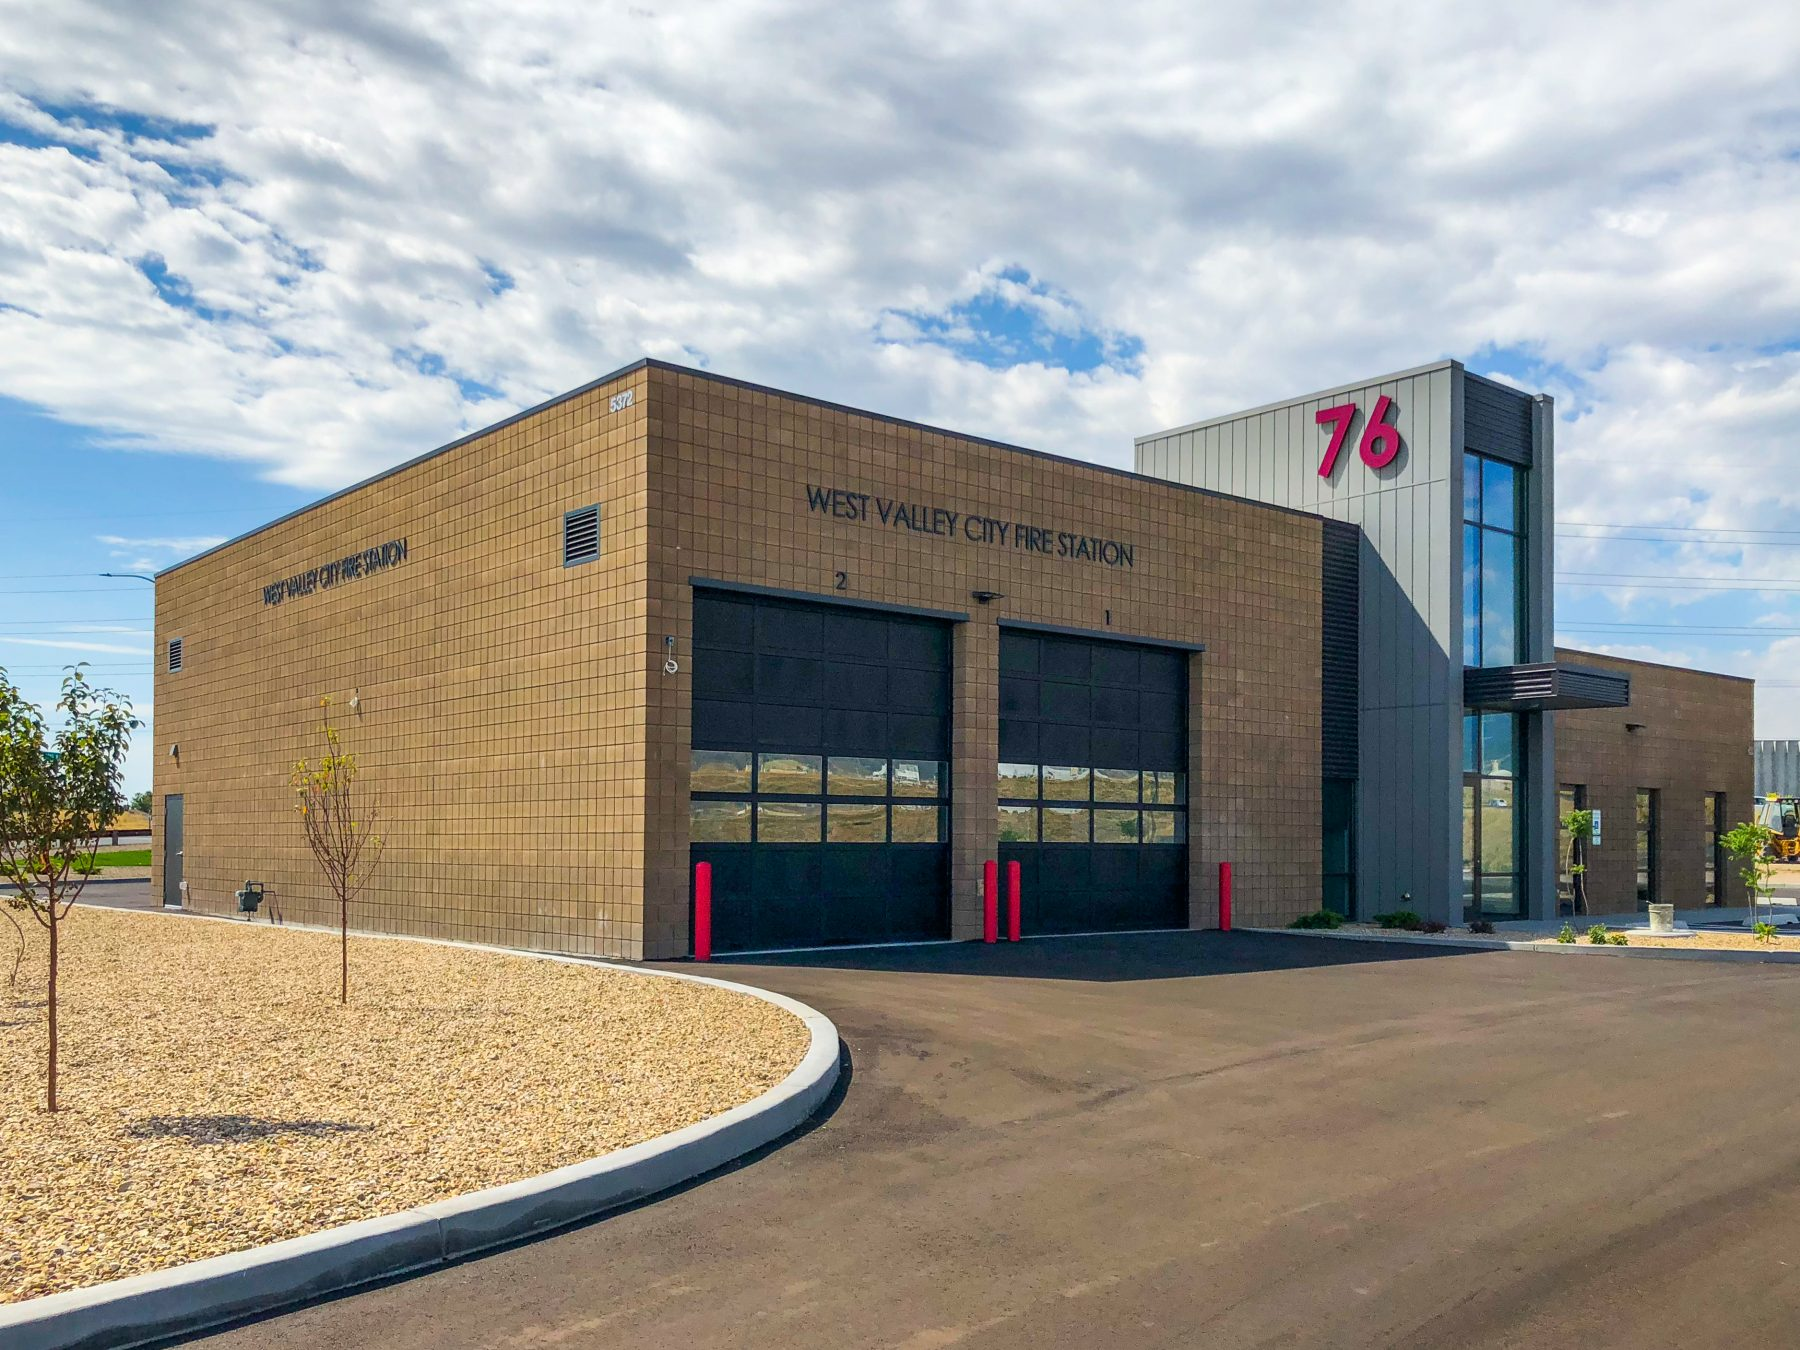 West Valley City Fire Station #76